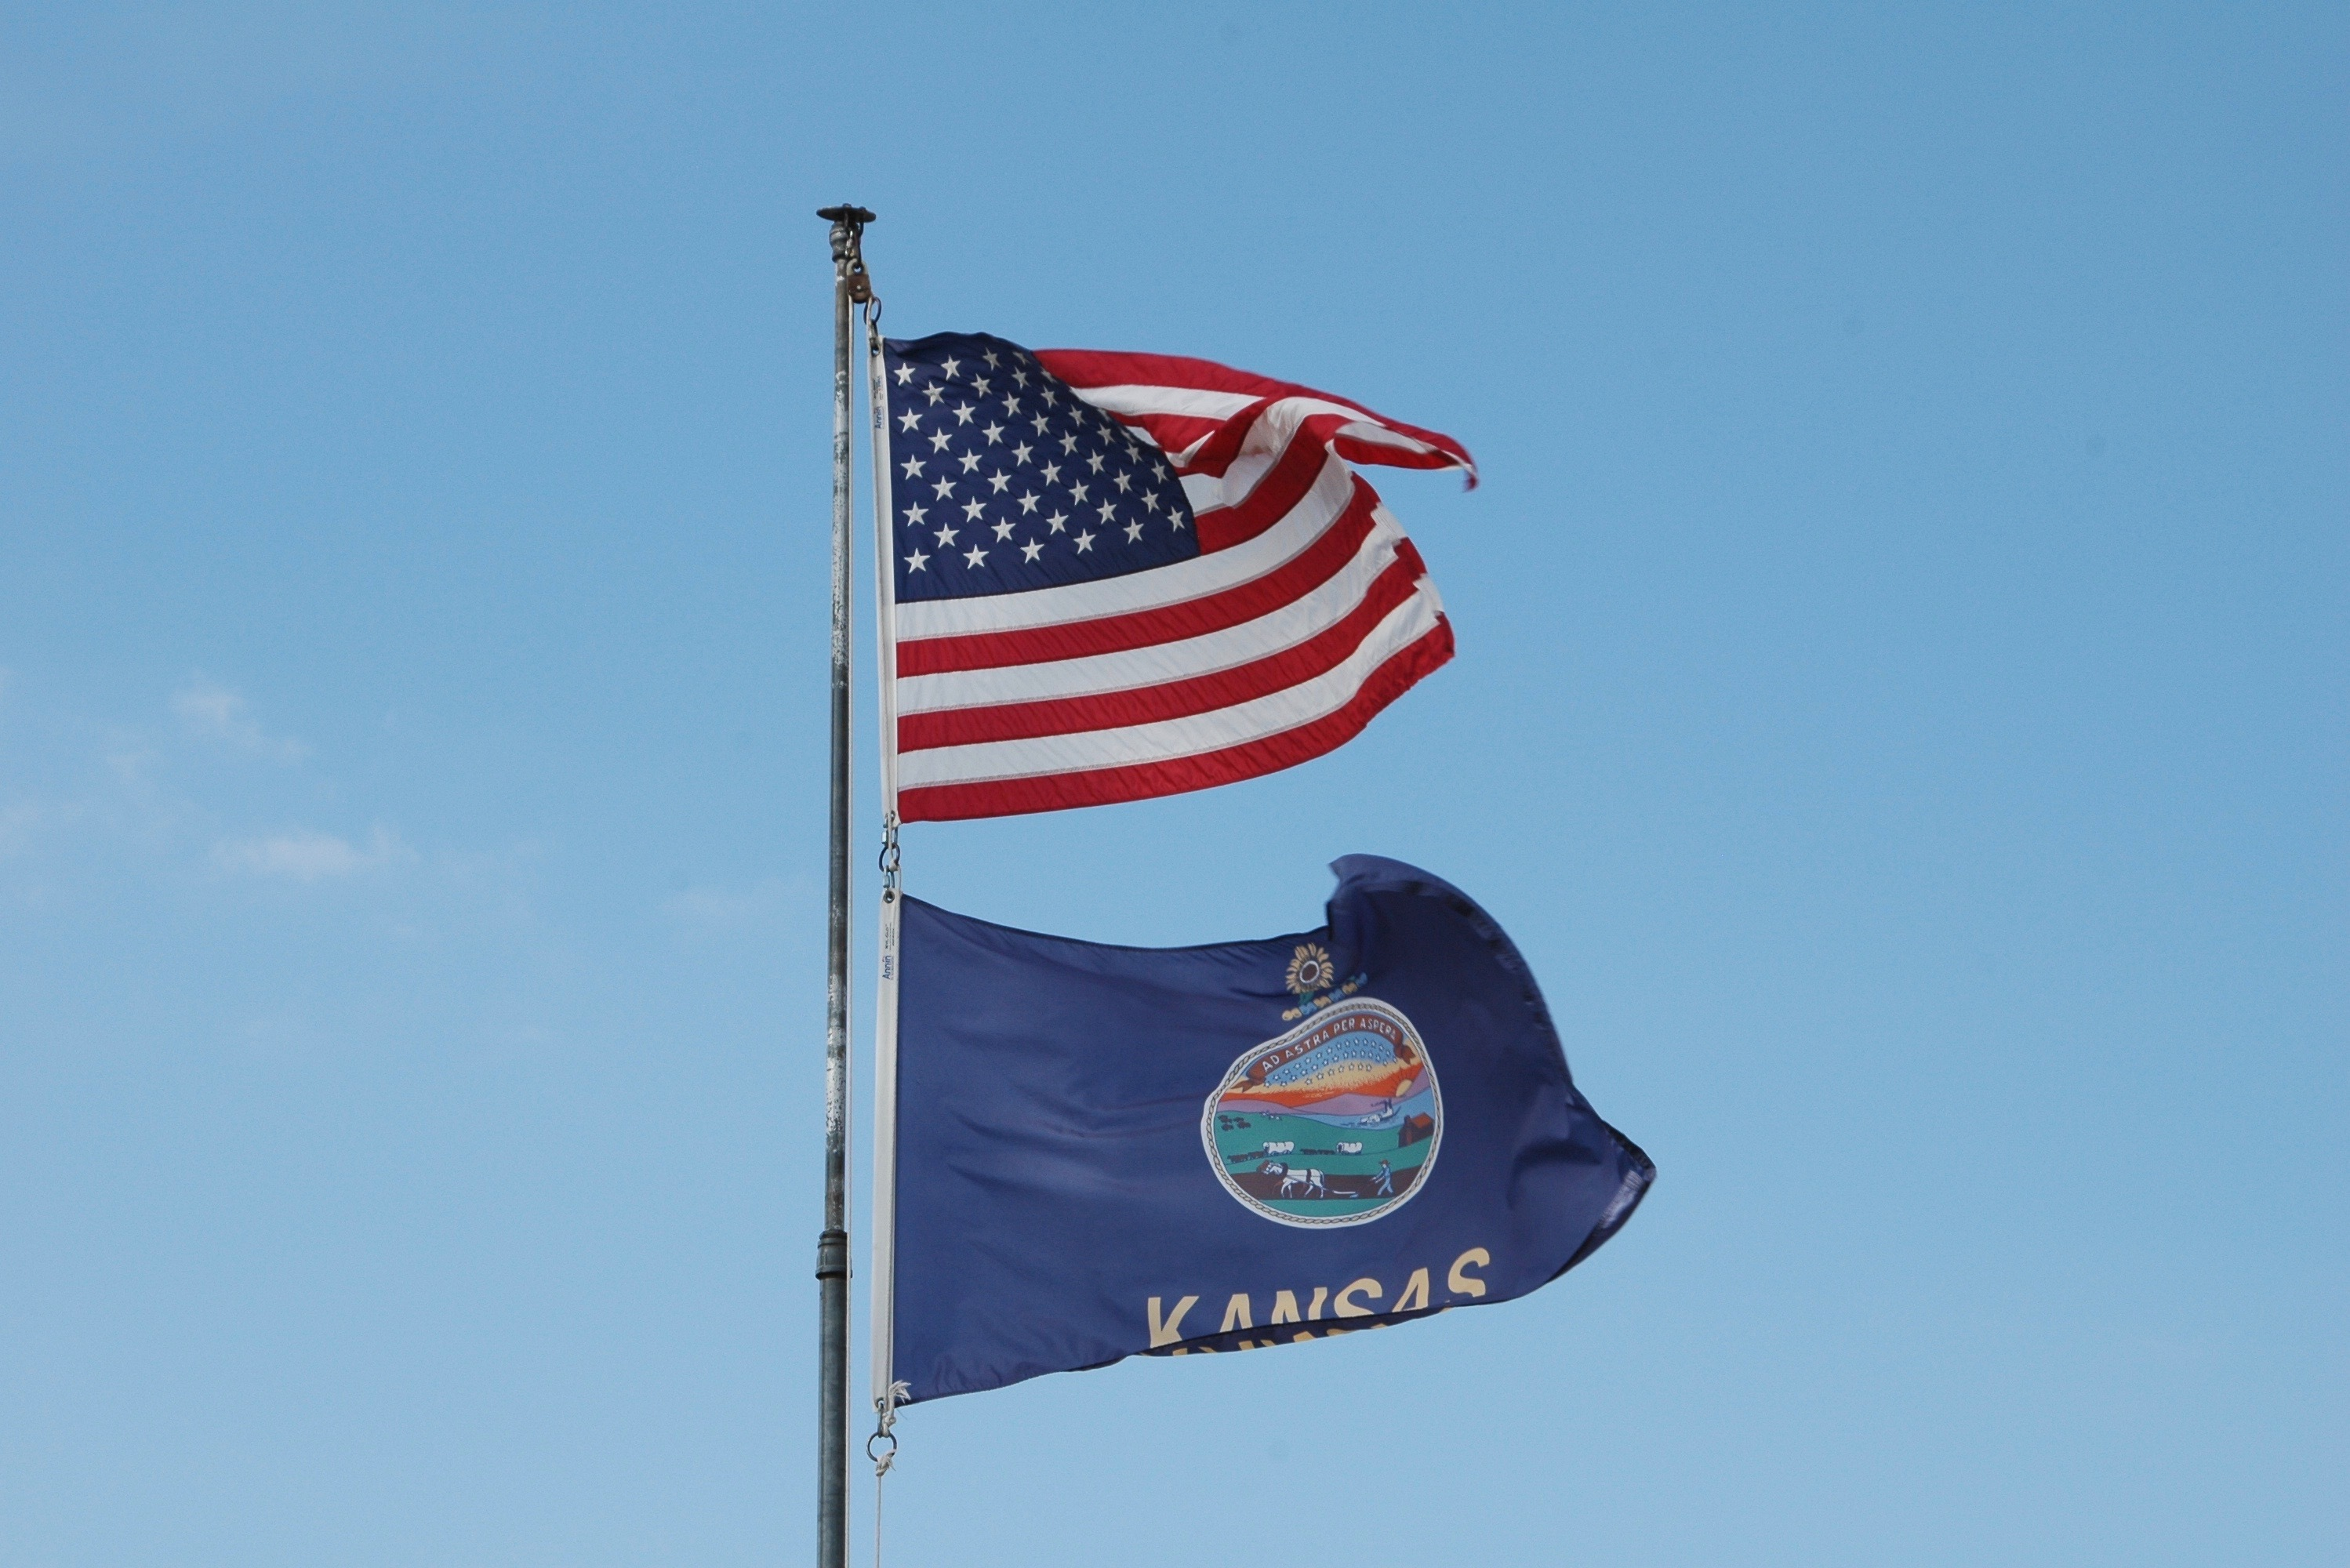 U.S. and Kansas Flag waving in the wind